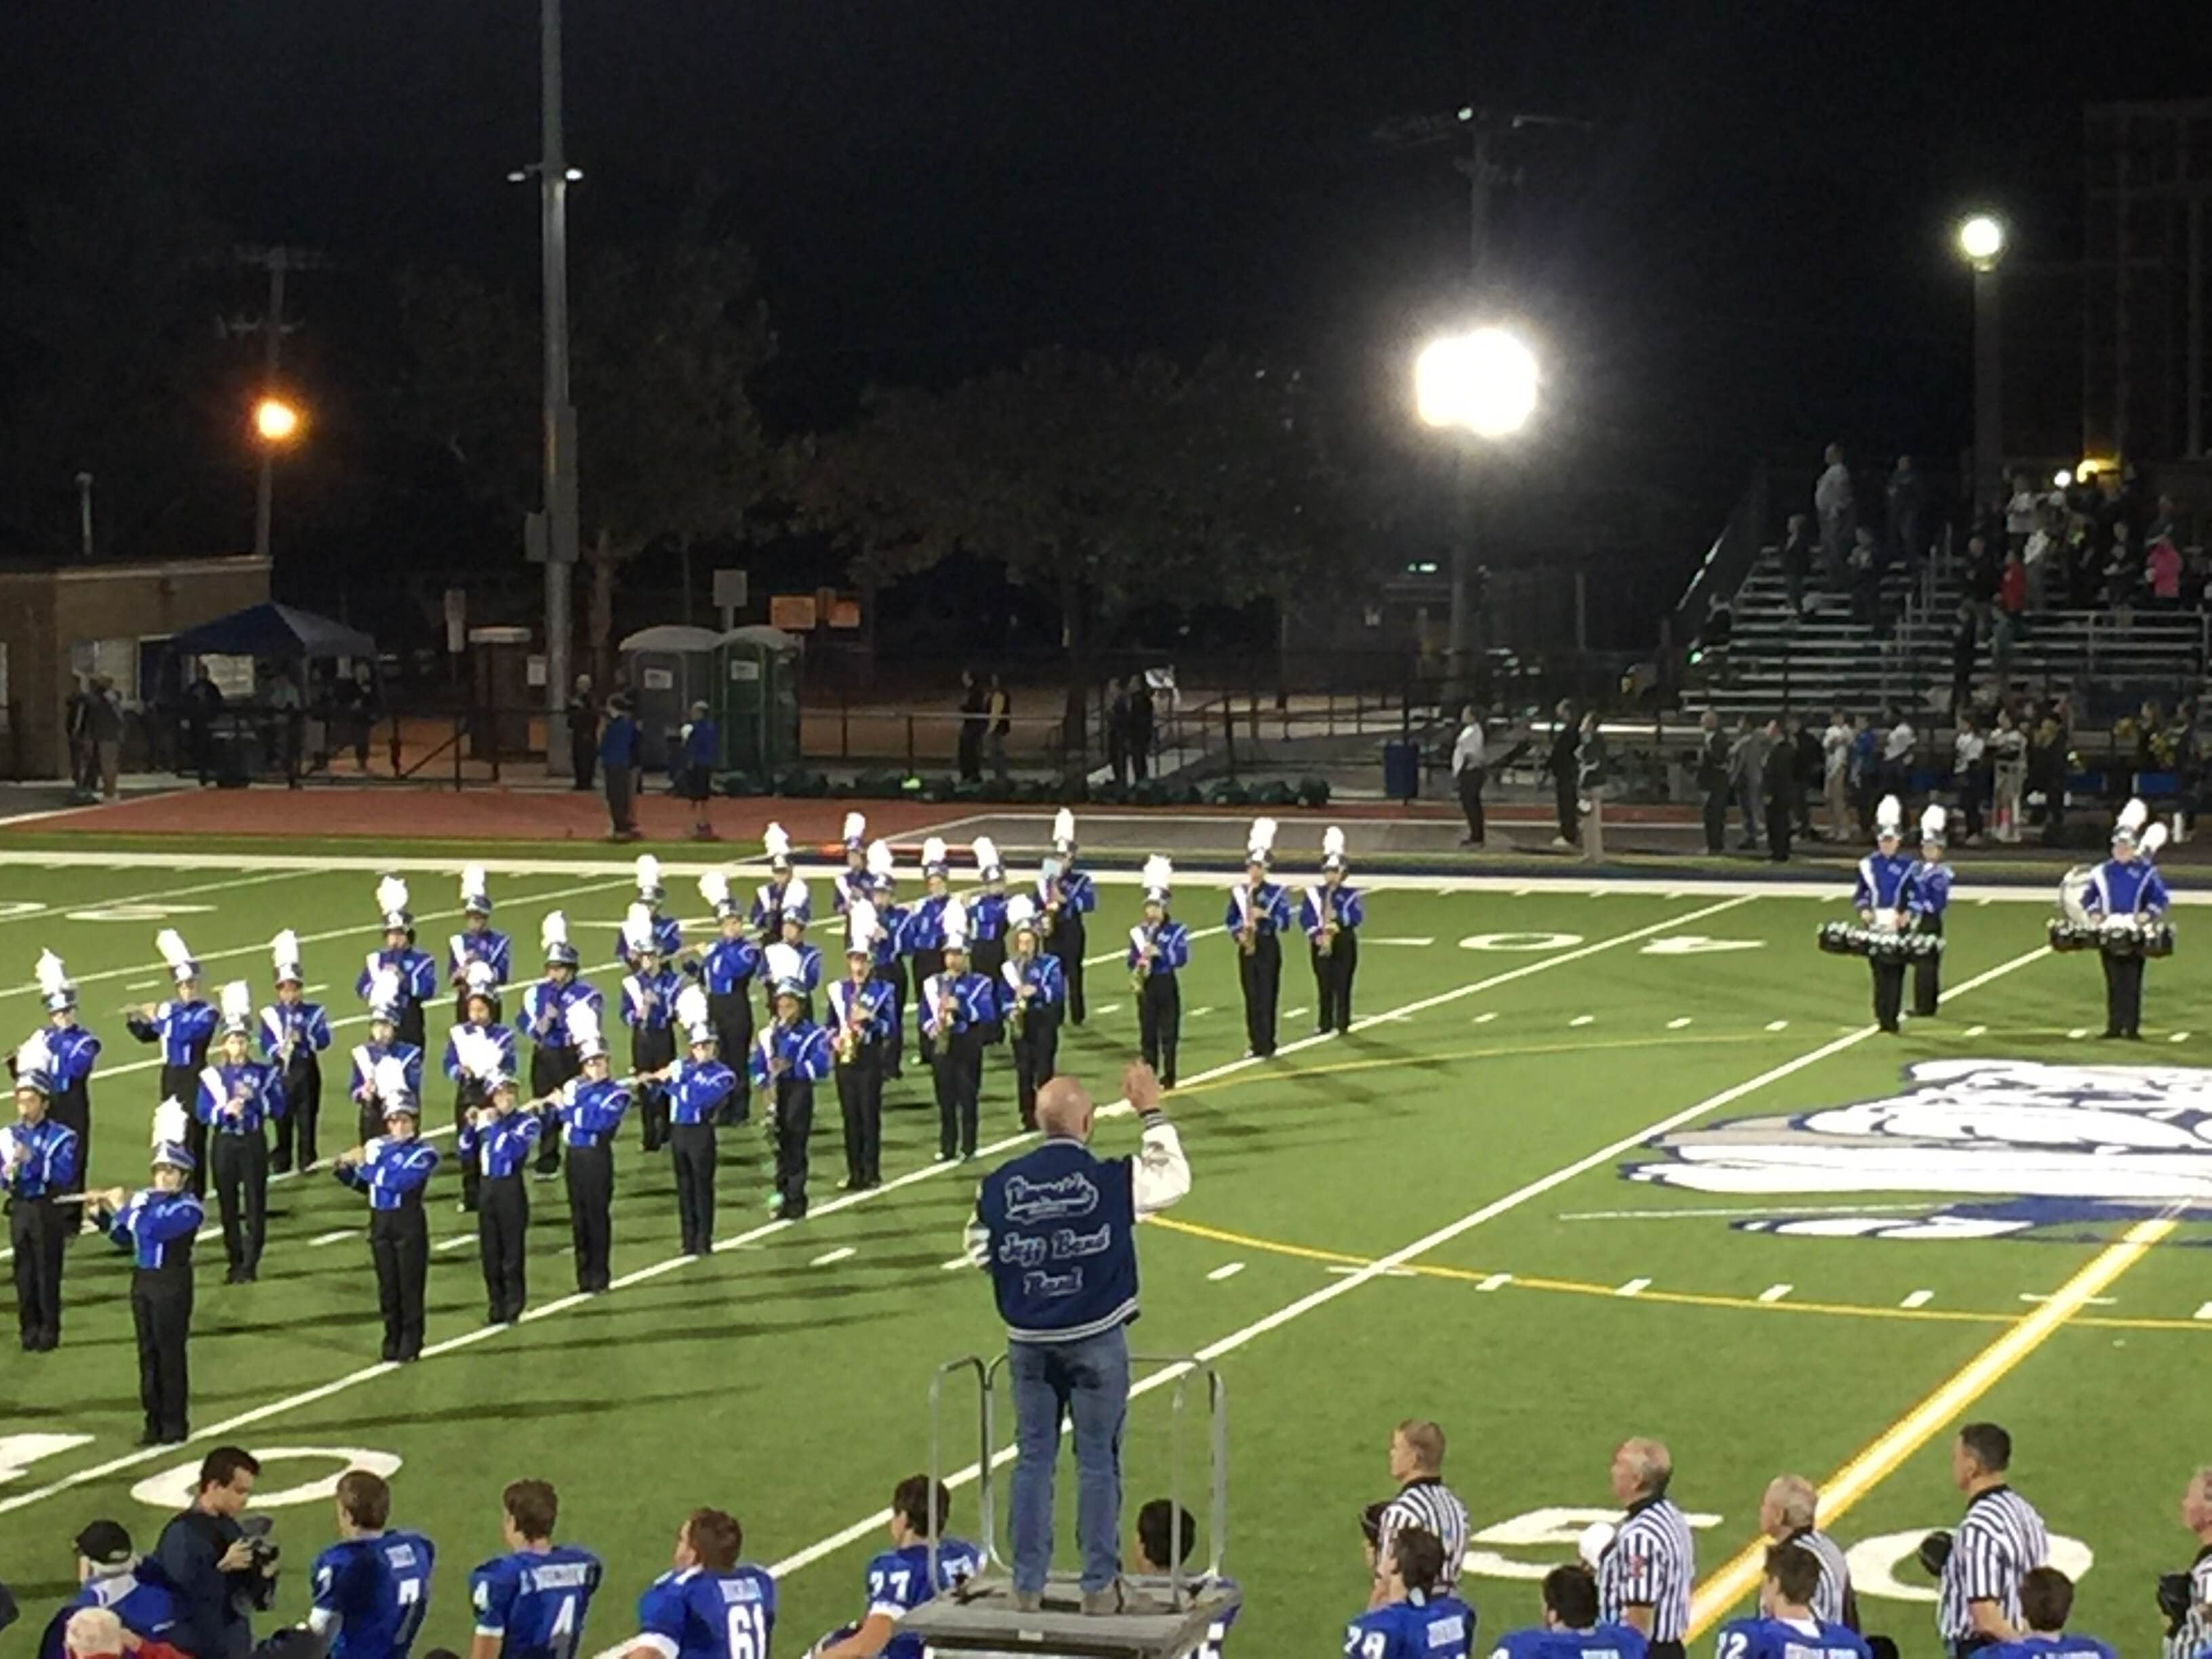 James Baum conducting the high school band during an RB football game.